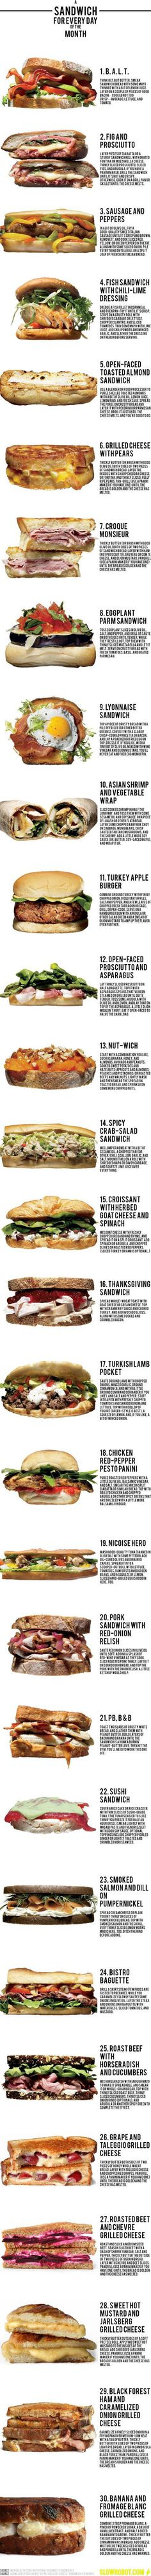 A sandwich for every day of the month... I'm hungry now - 9GAG